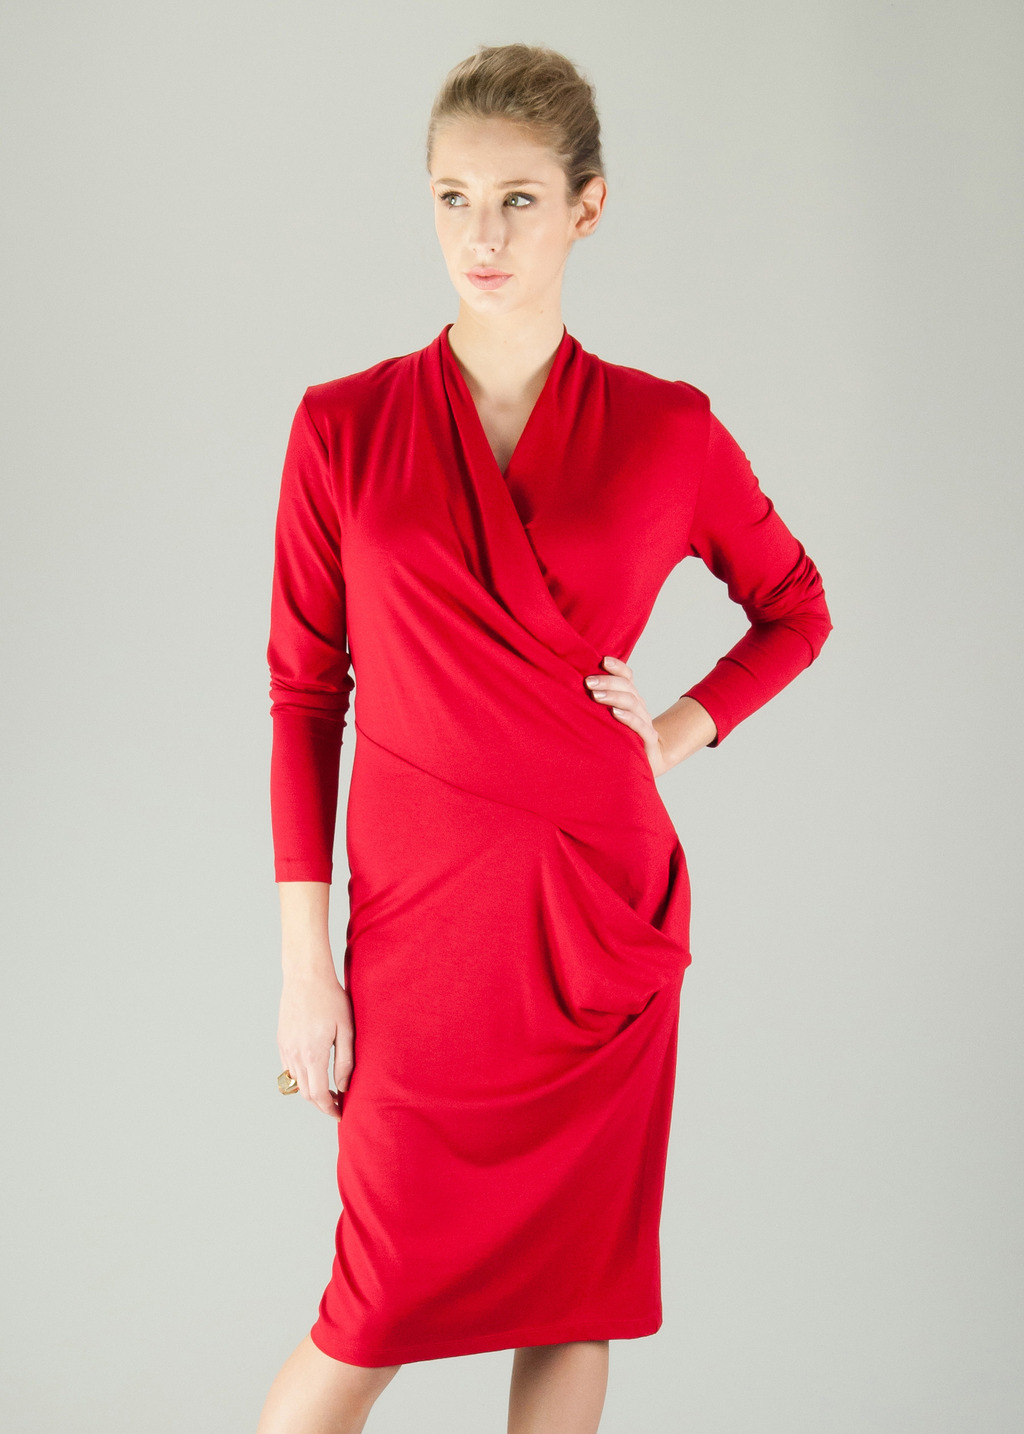 Chelsea Dress - style: faux wrap/wrap; length: below the knee; neckline: v-neck; pattern: plain; predominant colour: true red; occasions: evening, occasion; fit: body skimming; fibres: viscose/rayon - stretch; hip detail: subtle/flattering hip detail; sleeve length: long sleeve; sleeve style: standard; pattern type: fabric; texture group: jersey - stretchy/drapey; season: a/w 2013